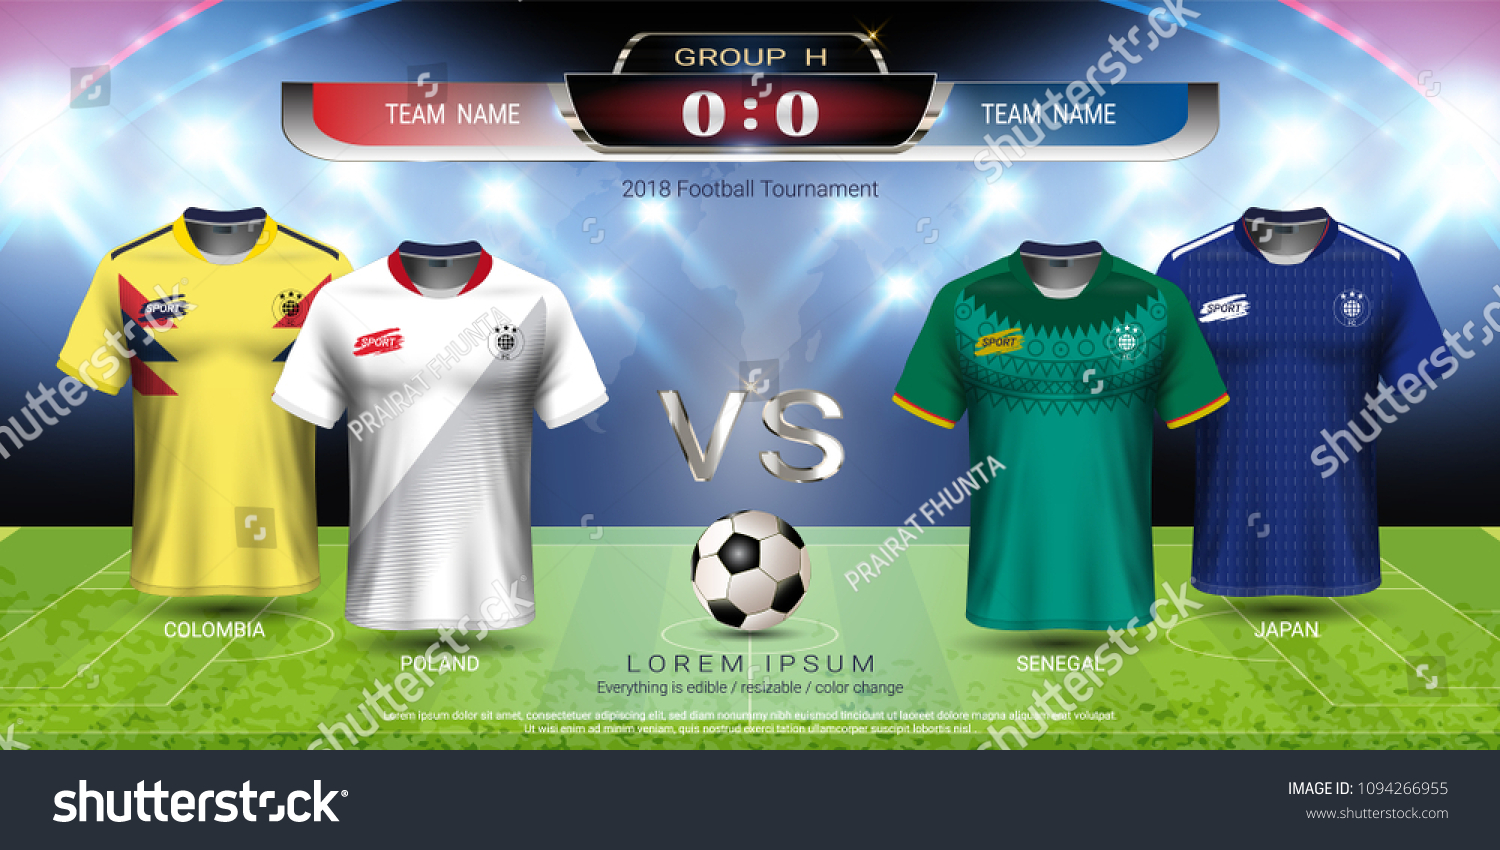 dce3053fc1c Football players jersey uniform with scoreboard match vs strategy broadcast  graphic template